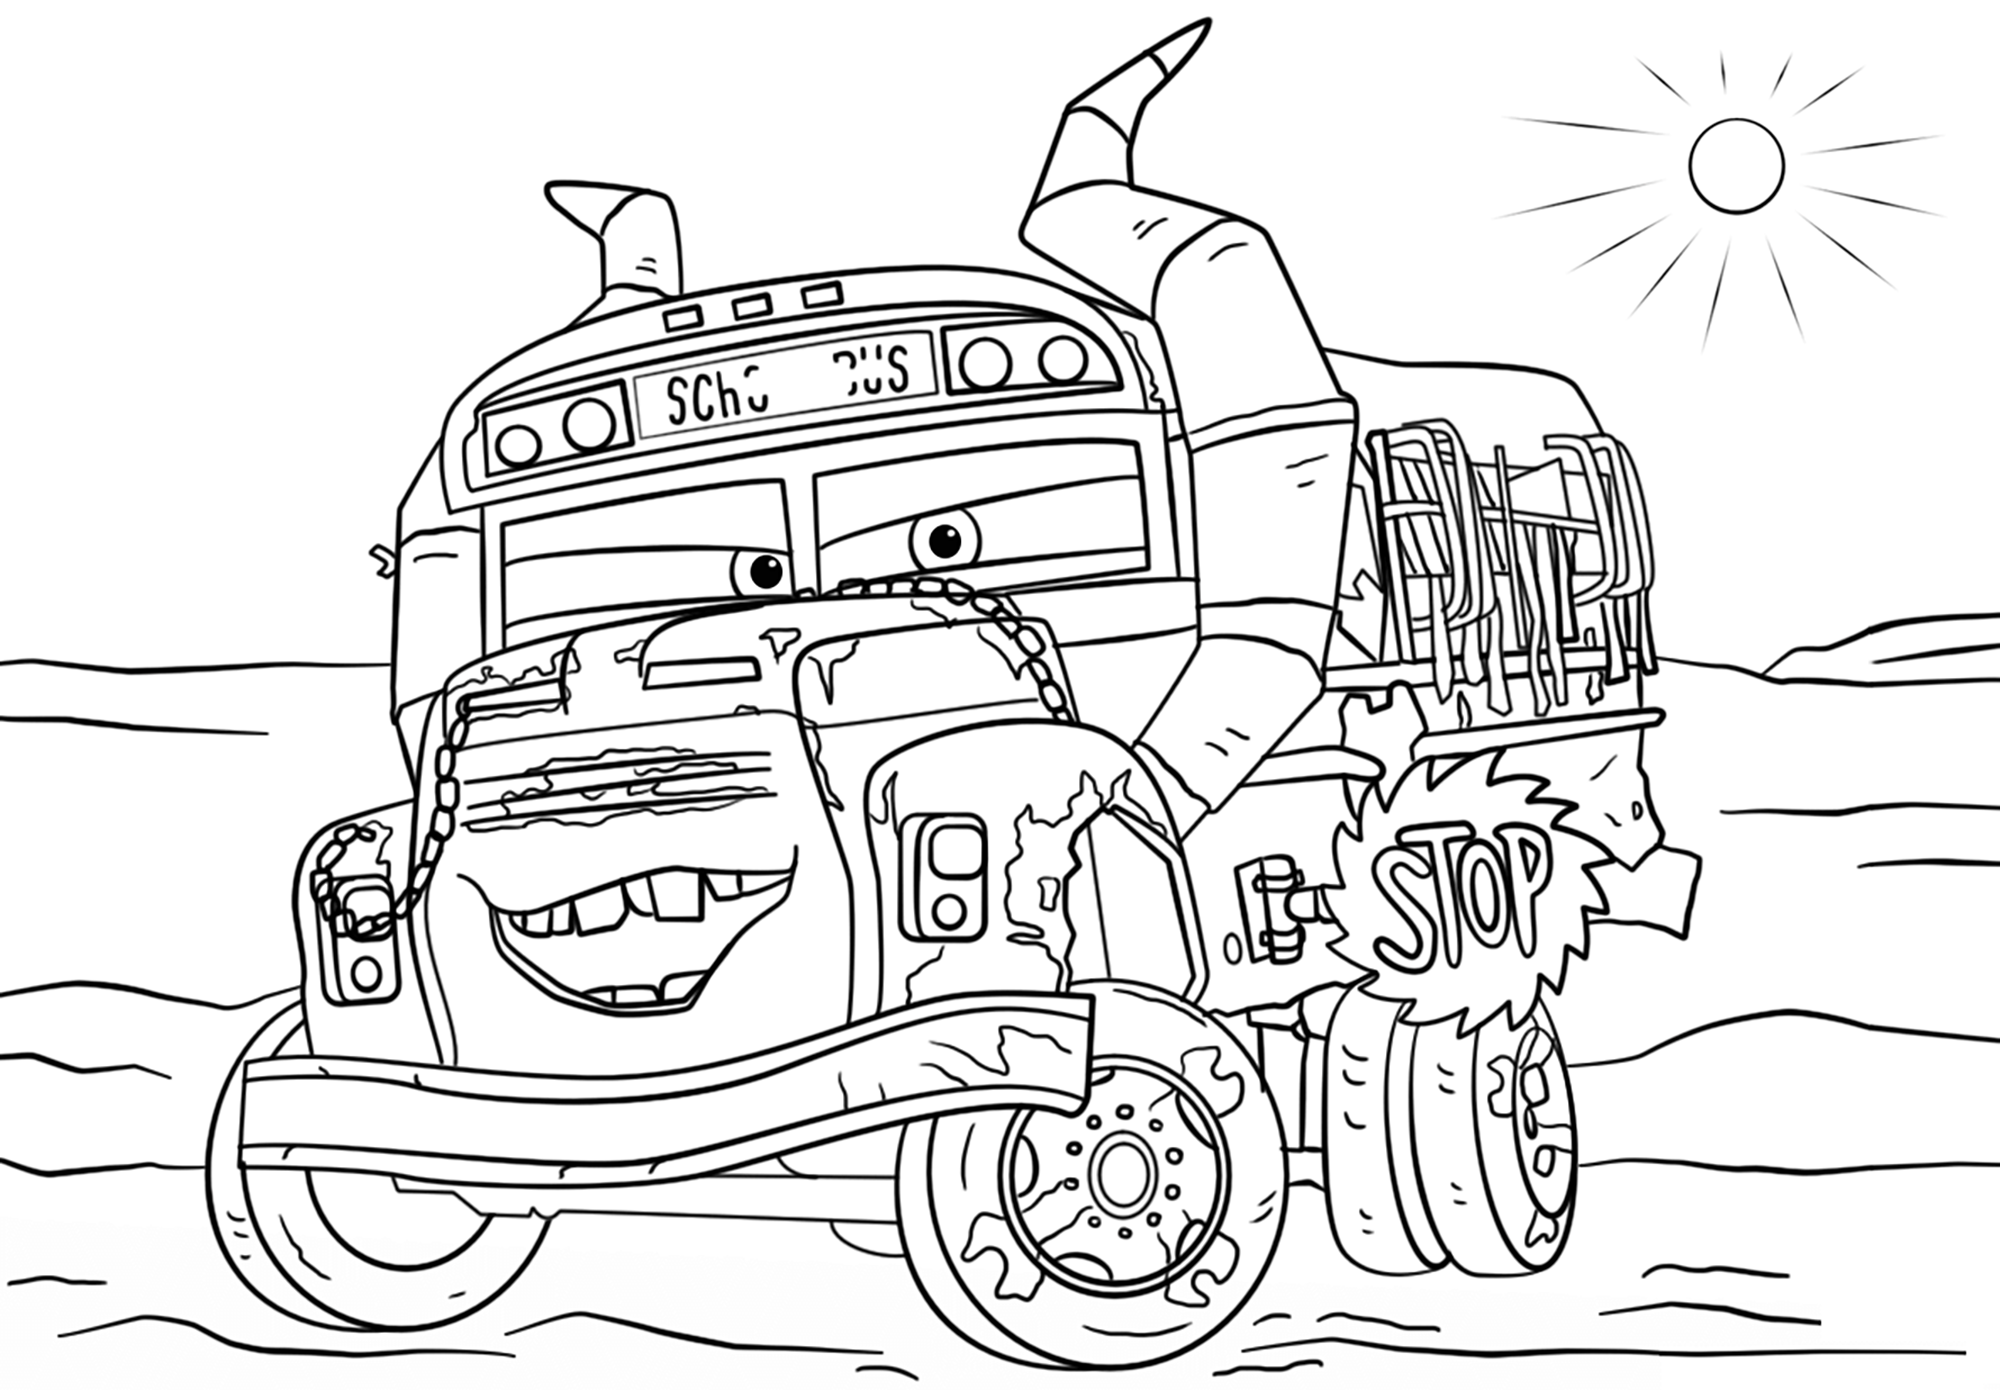 disney pixar cars coloring pages disney cars coloring pages printable best gift ideas blog cars coloring disney pages pixar